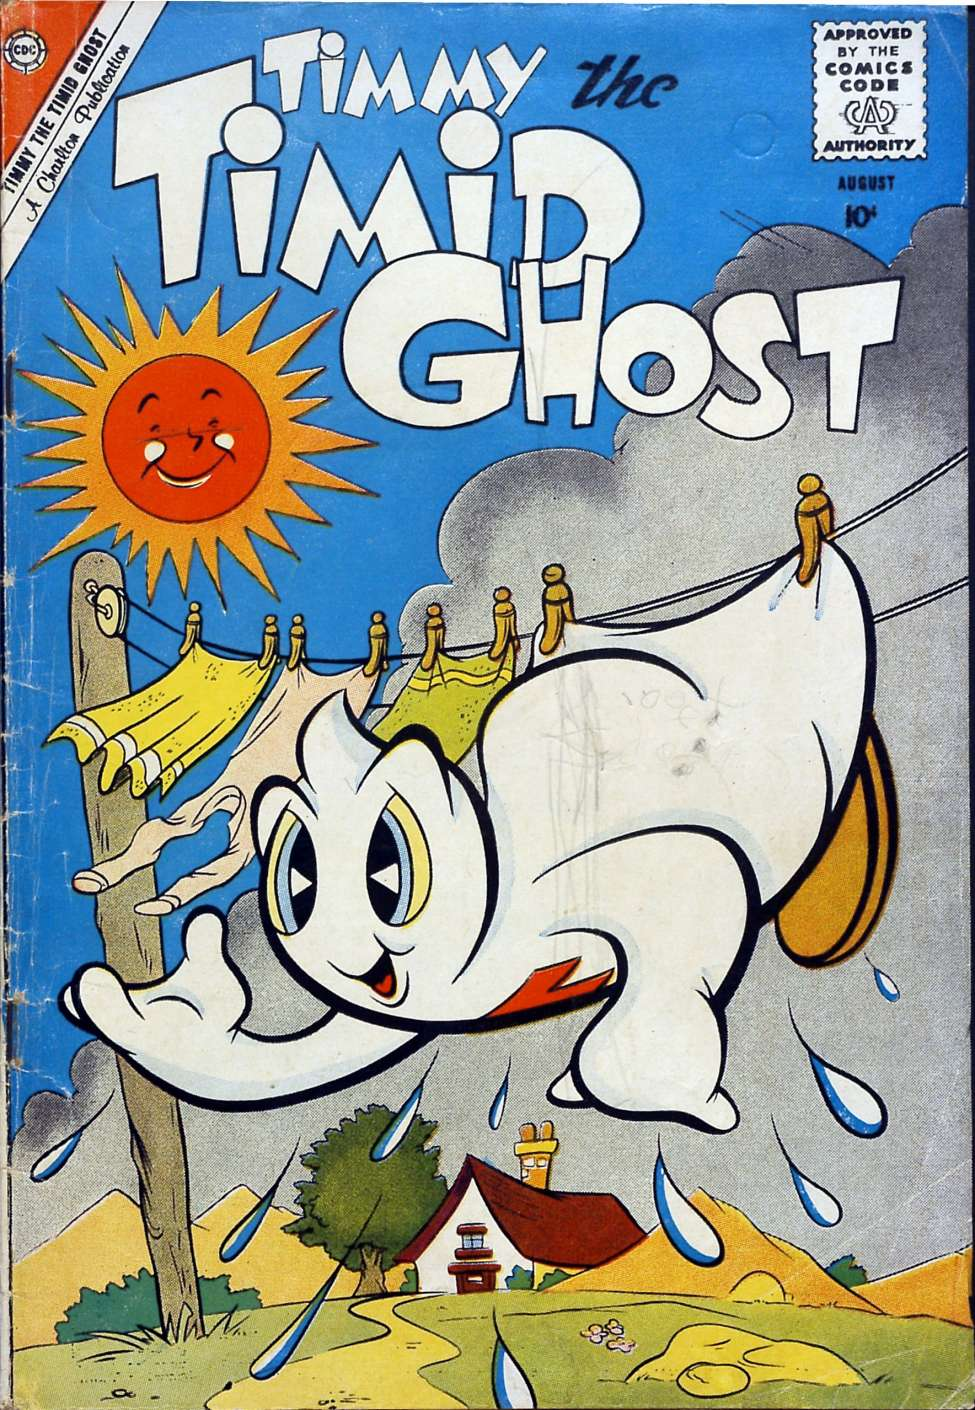 Comic Book Cover For Timmy the Timid Ghost #22